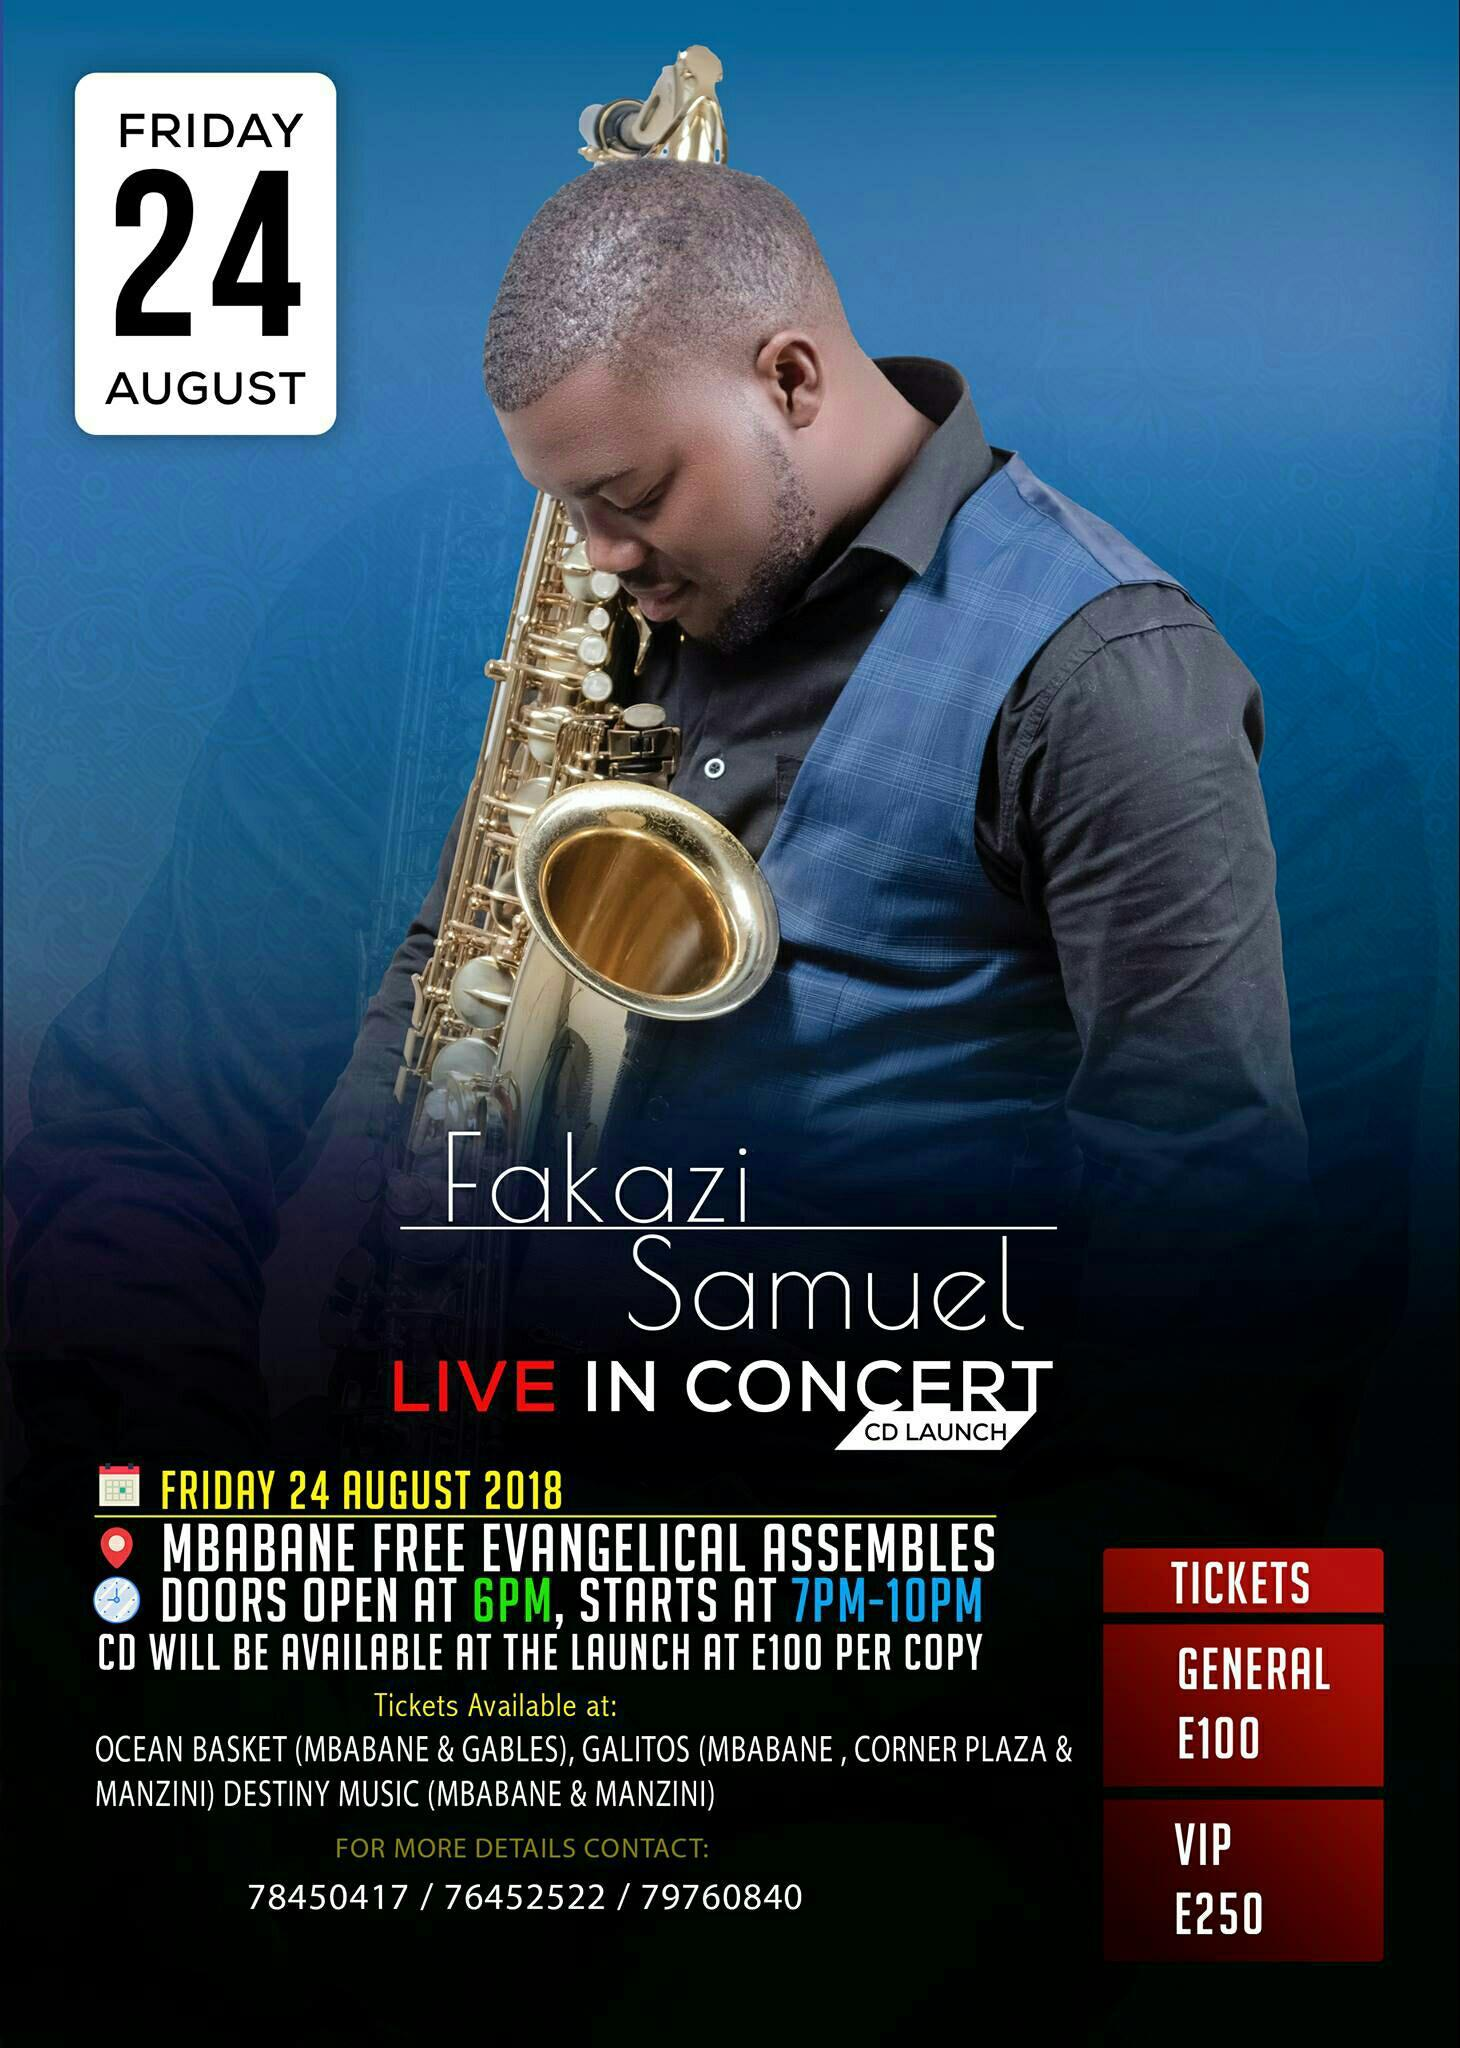 Fakazi Samuel CD Launch Live